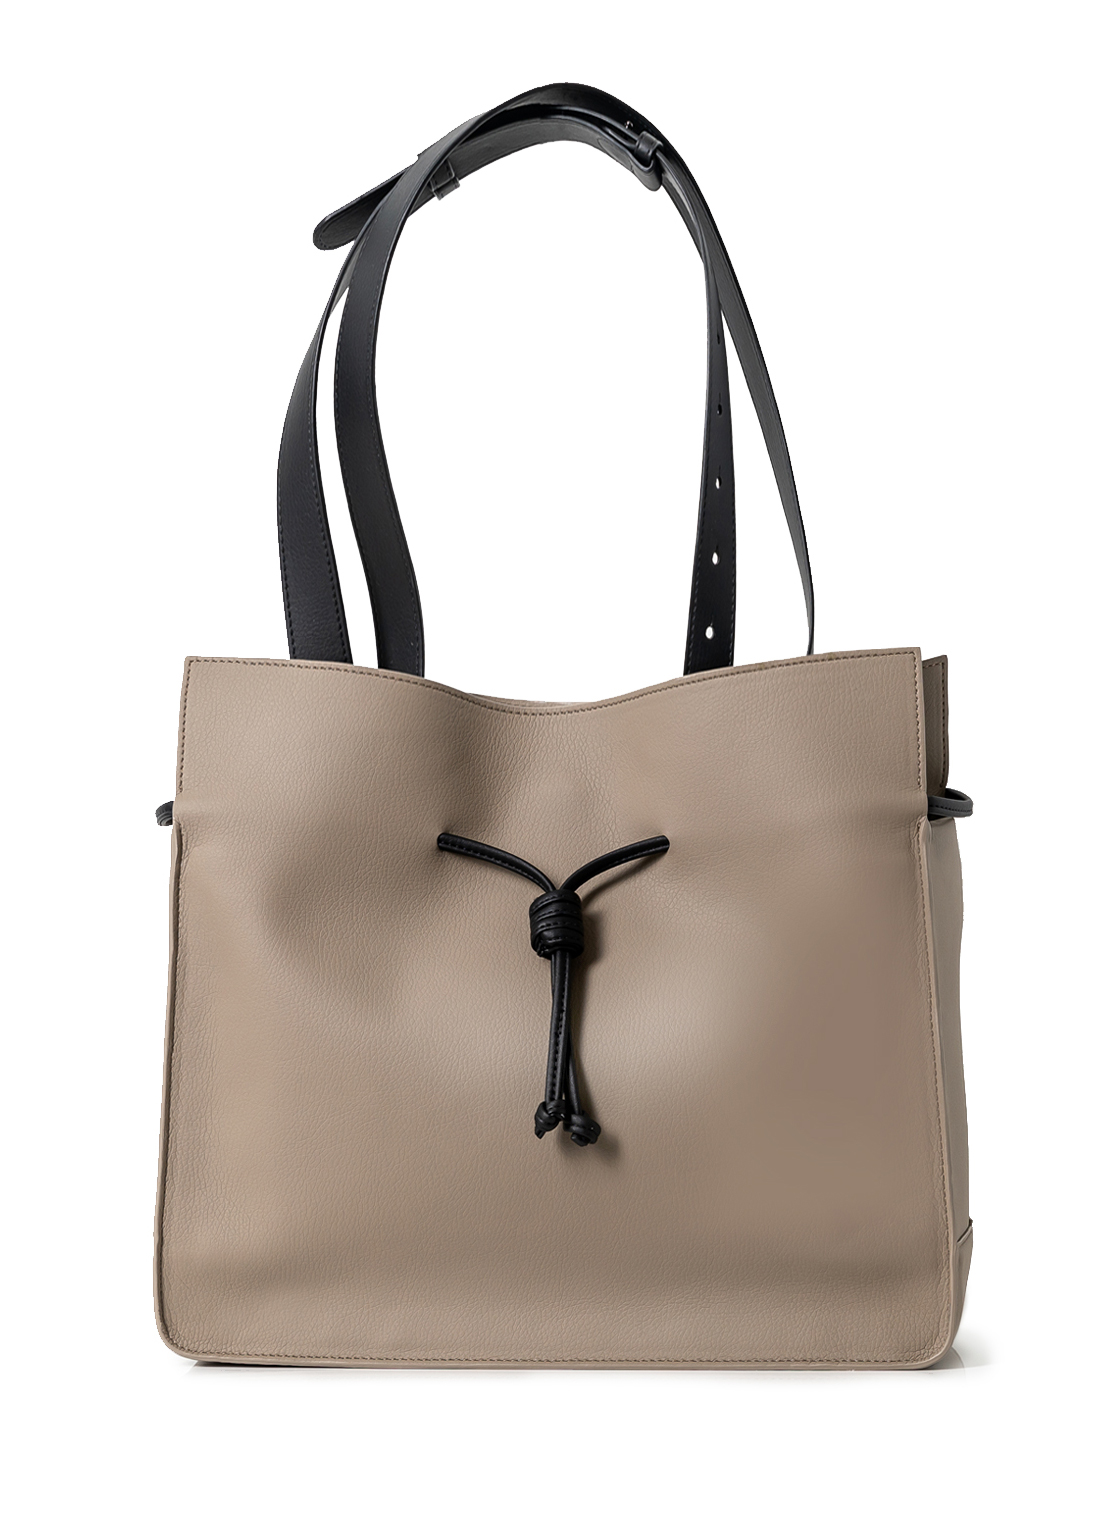 The Medium Shopper in Stone